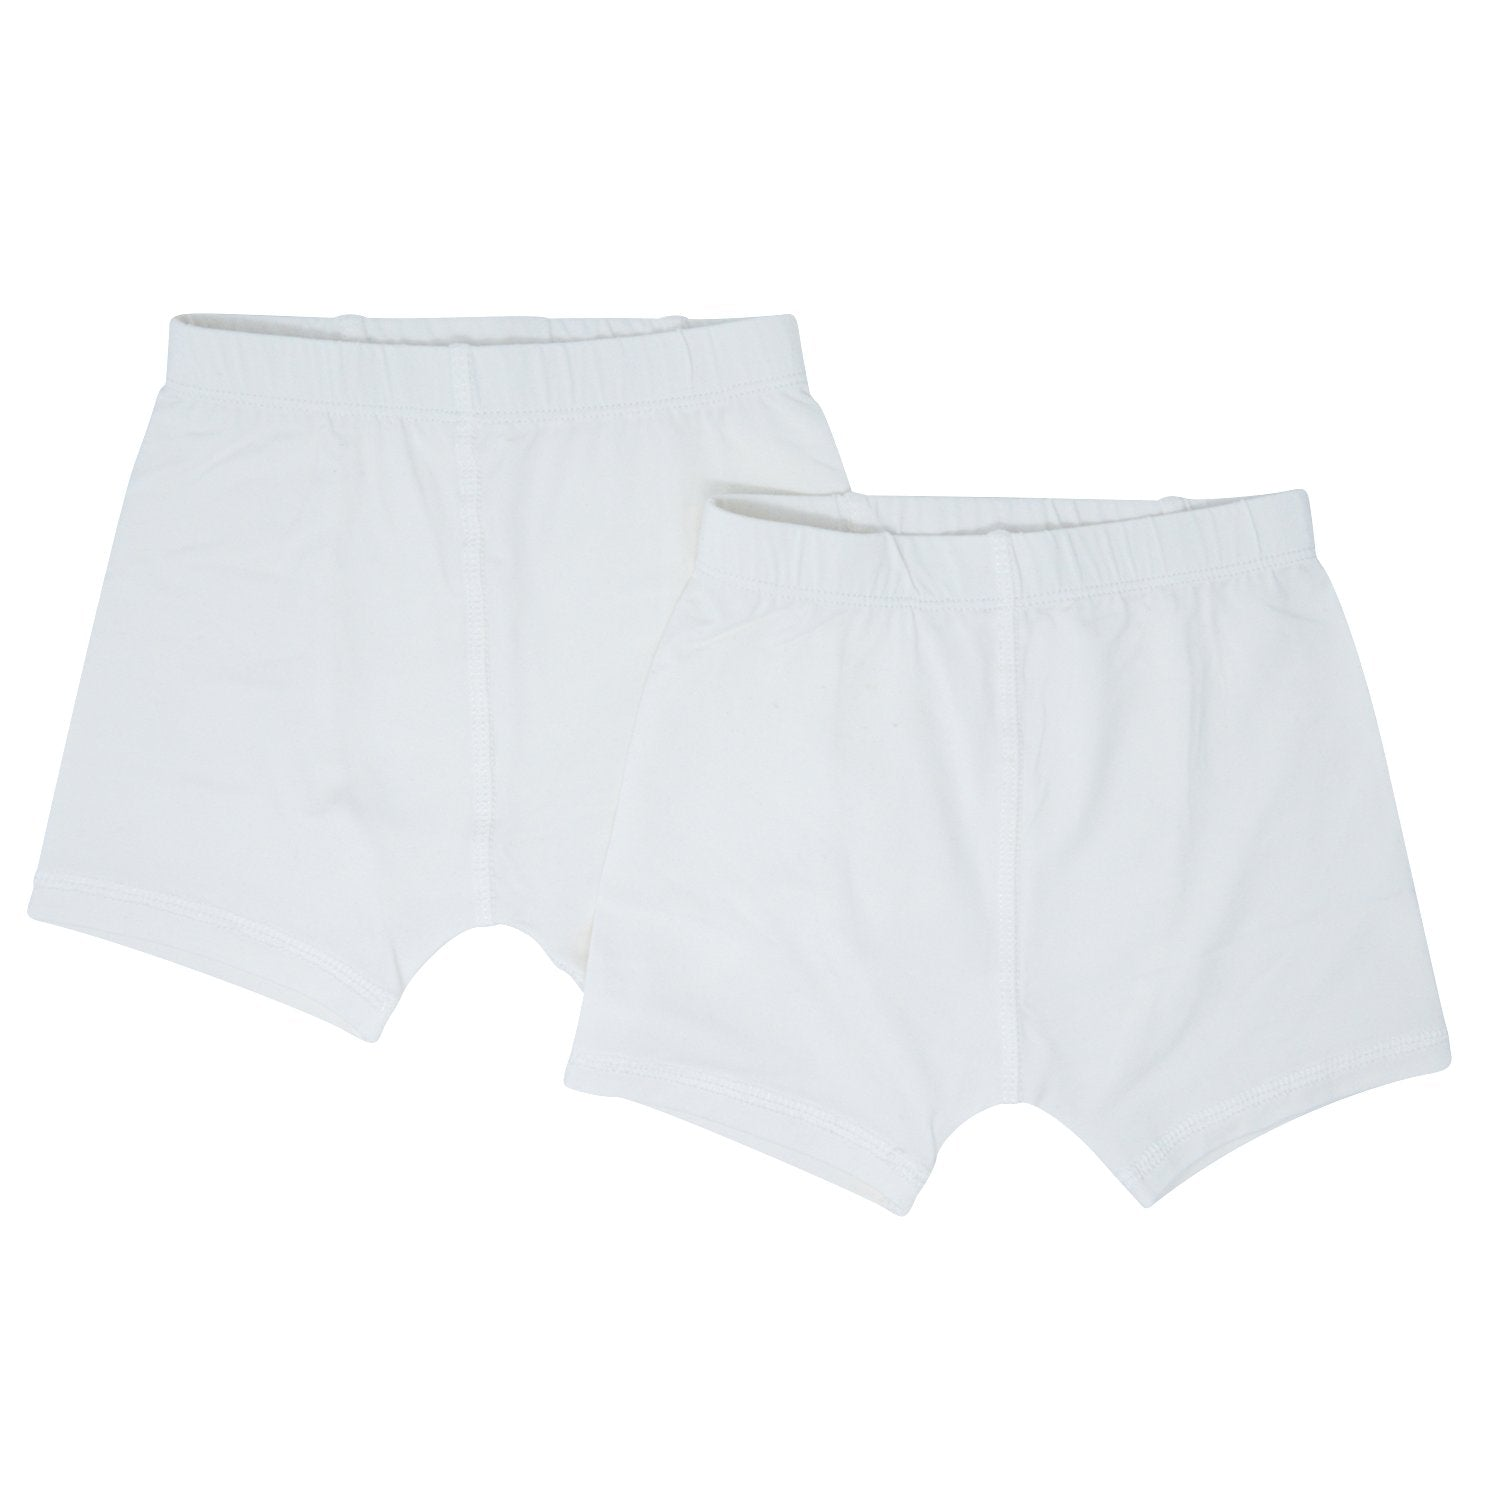 Underwear Brief Set - White/White - Sweet Bamboo